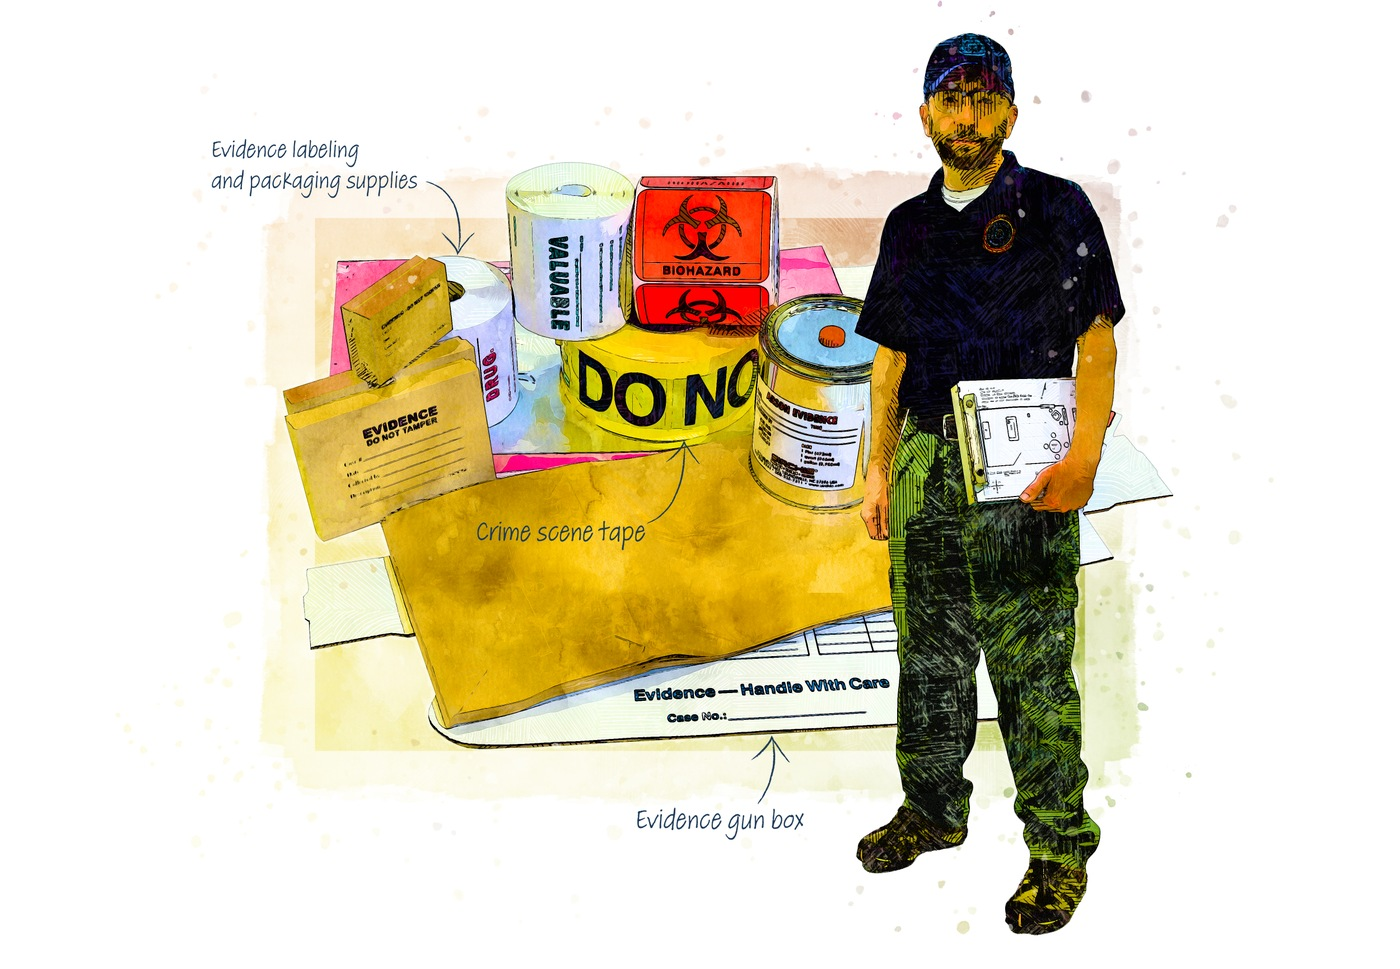 Illustration of crime tape and material used to package crime scene evidence.